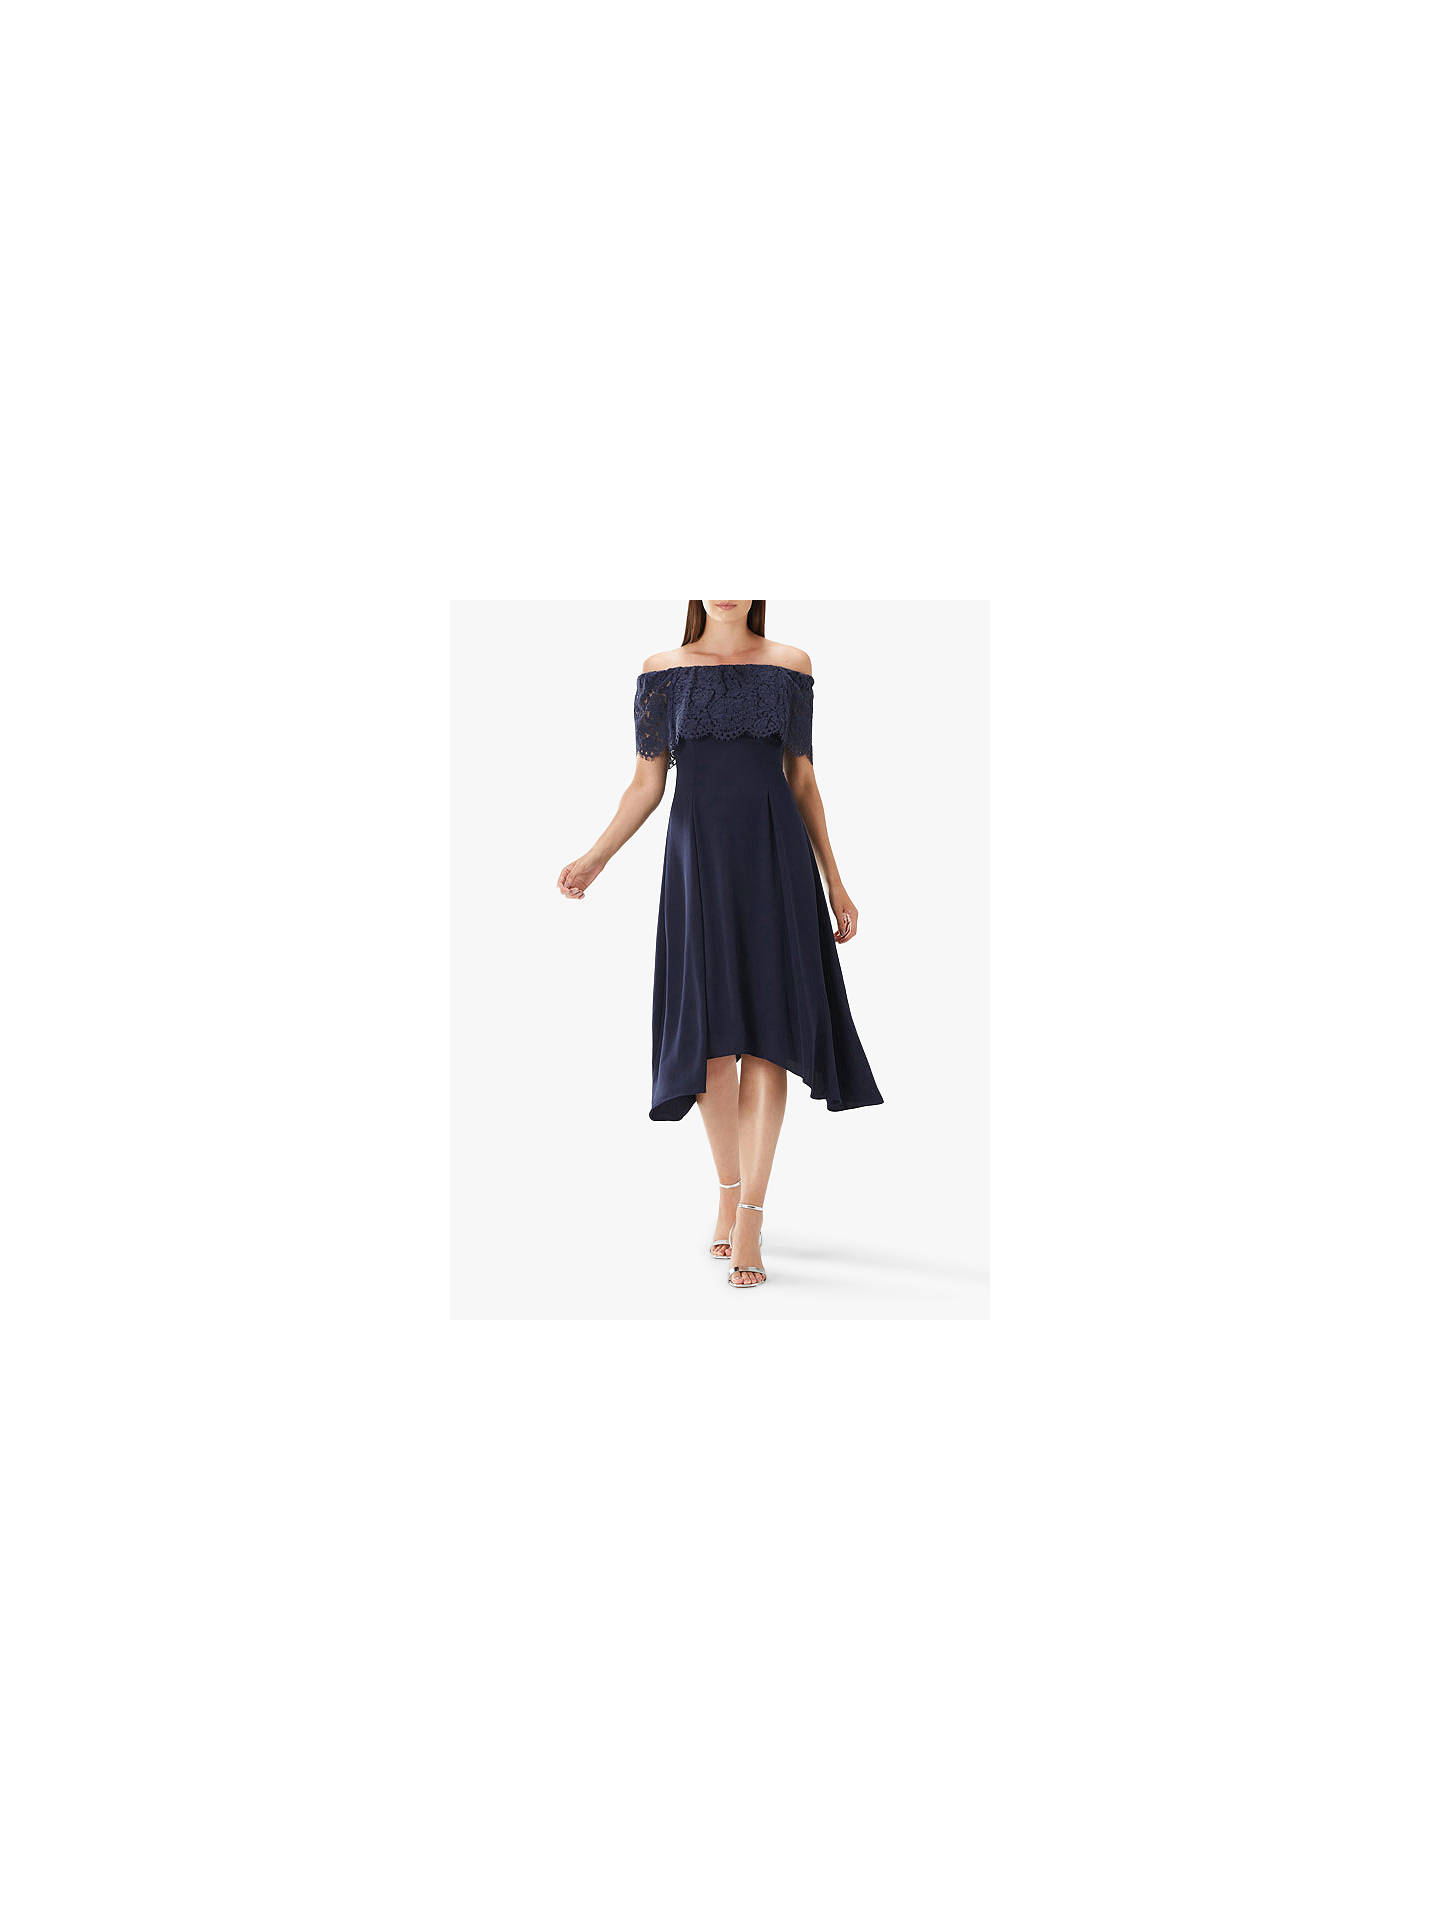 d6625bd718f5 Buy Coast Oriel Lace Bardot Dress, Navy, 24 Online at johnlewis.com ...